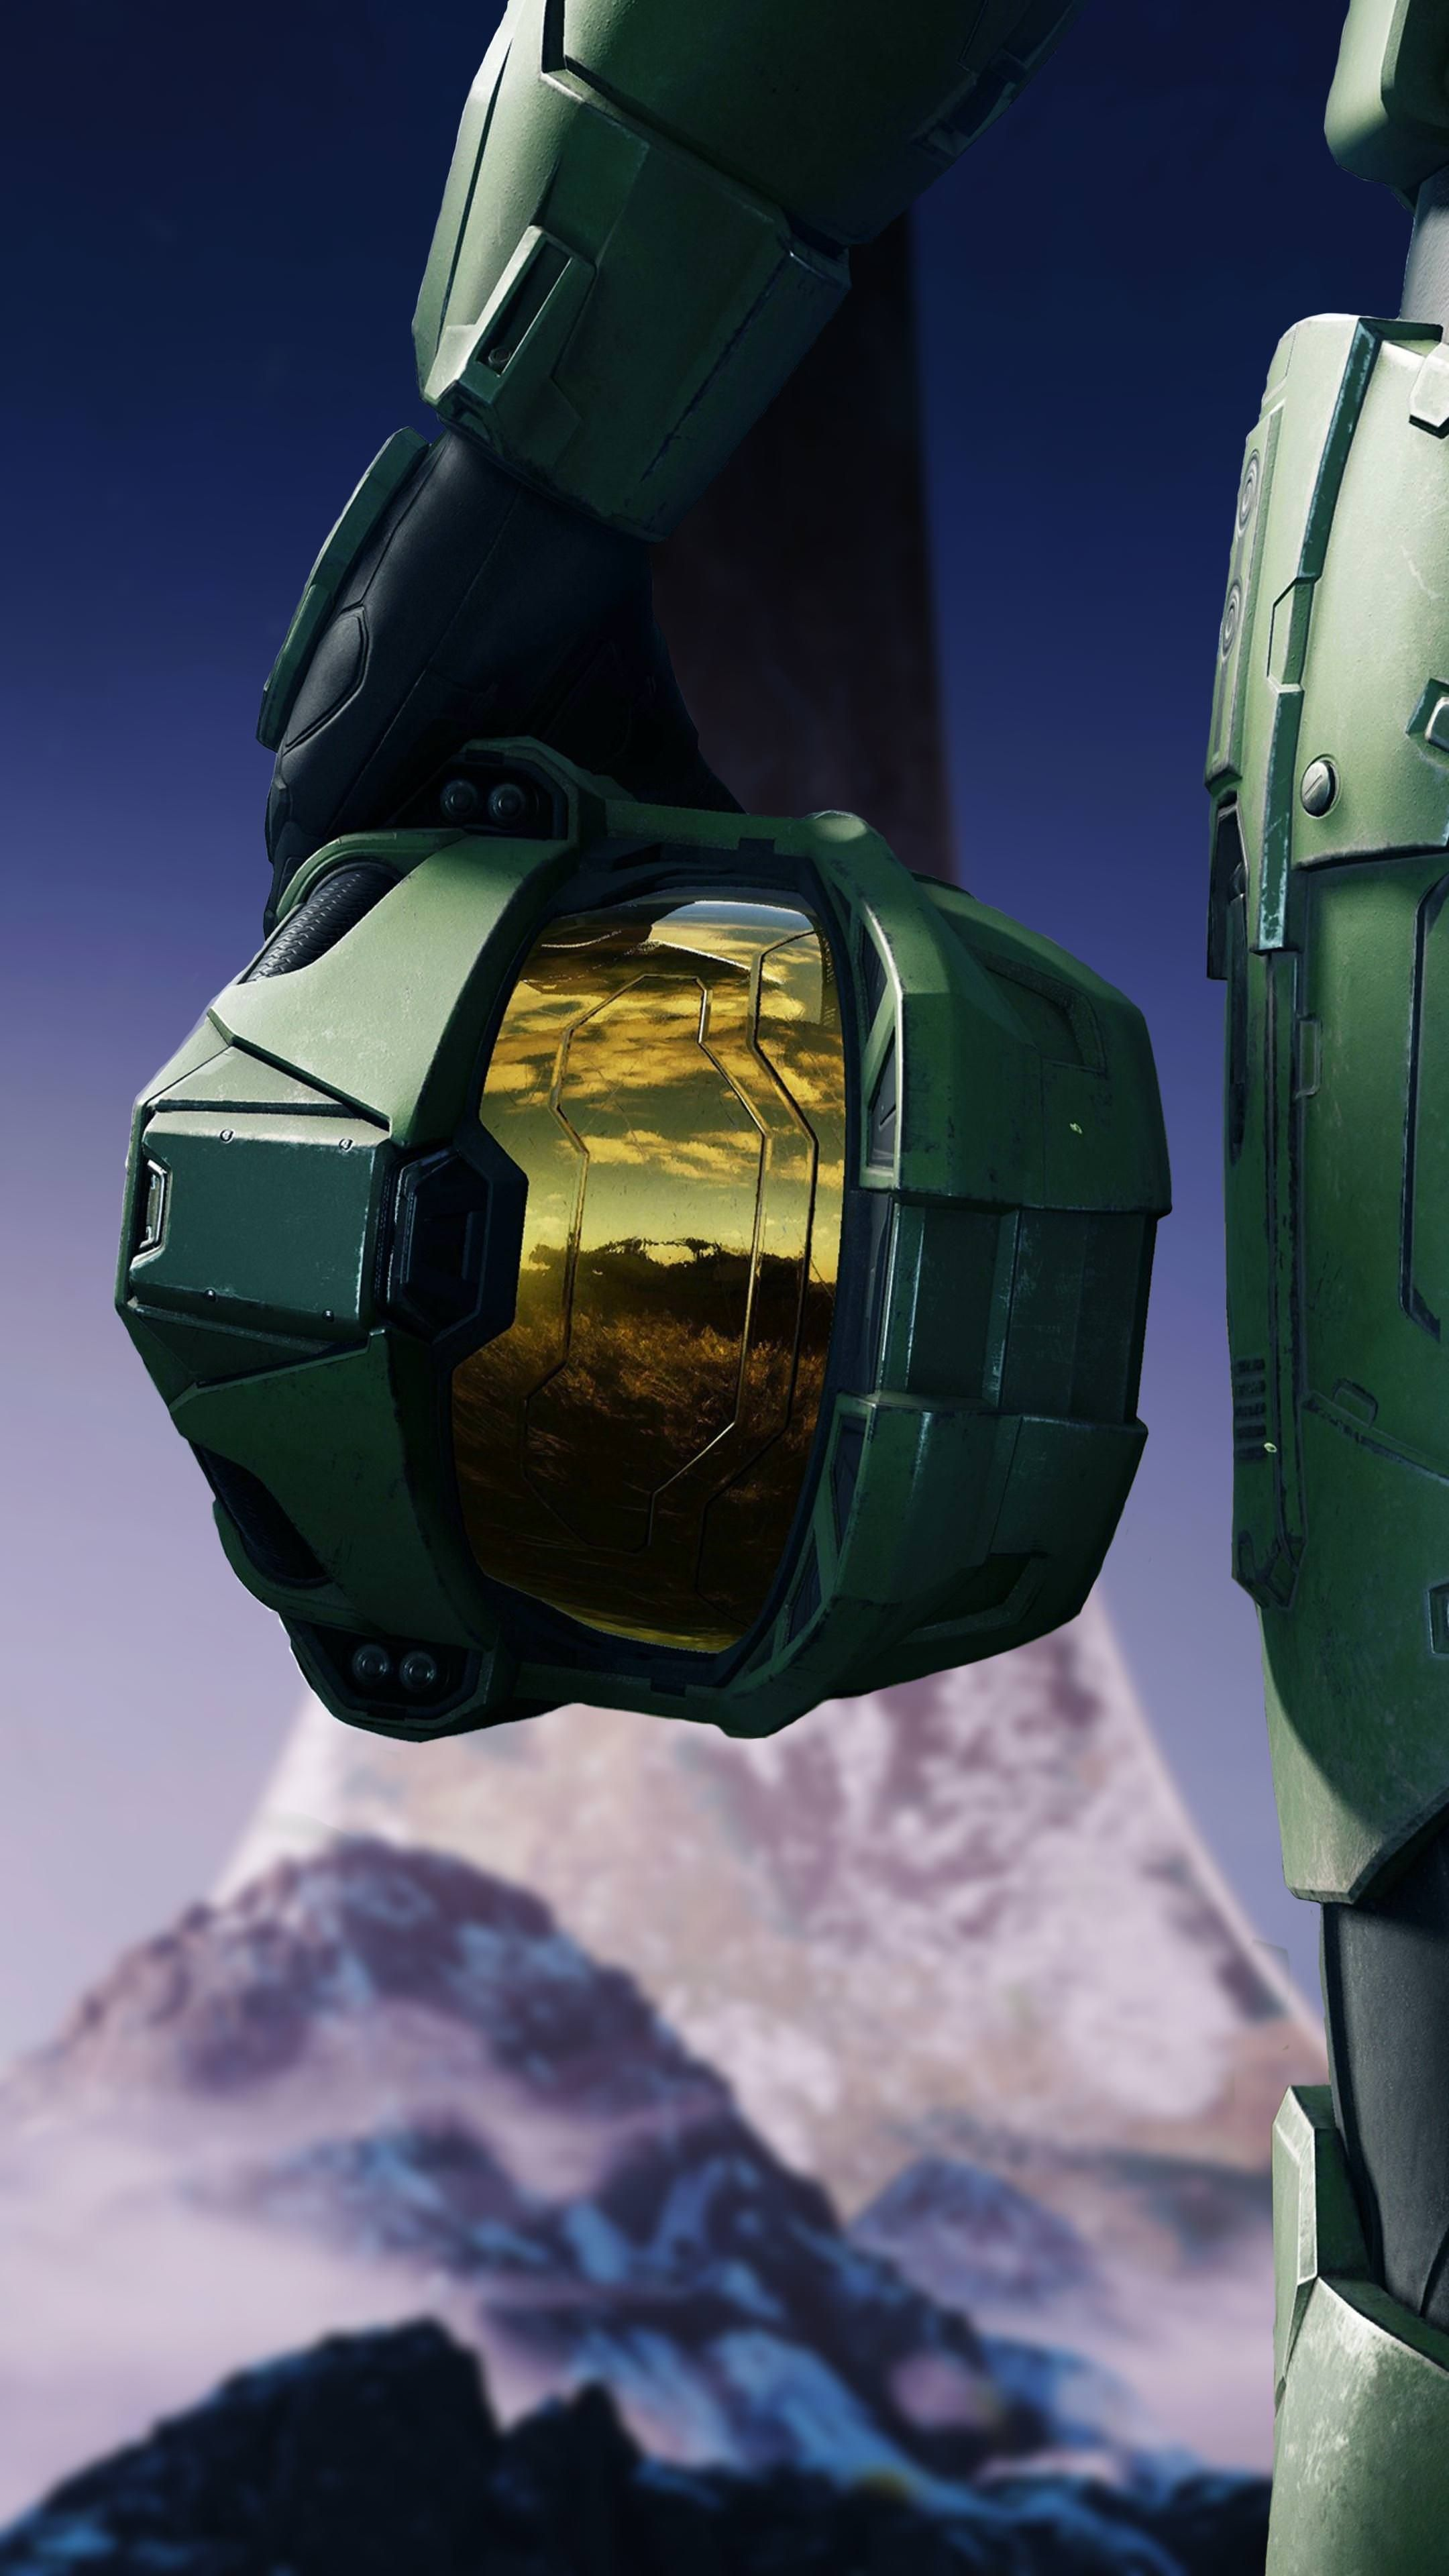 Halo Infinite Wallpaper I Made Download At Http Www Myfavwallpaper Com 2018 07 Halo Infinite Wallpaper I Made Html Iphone Halo Master Chief Halo Halo Game